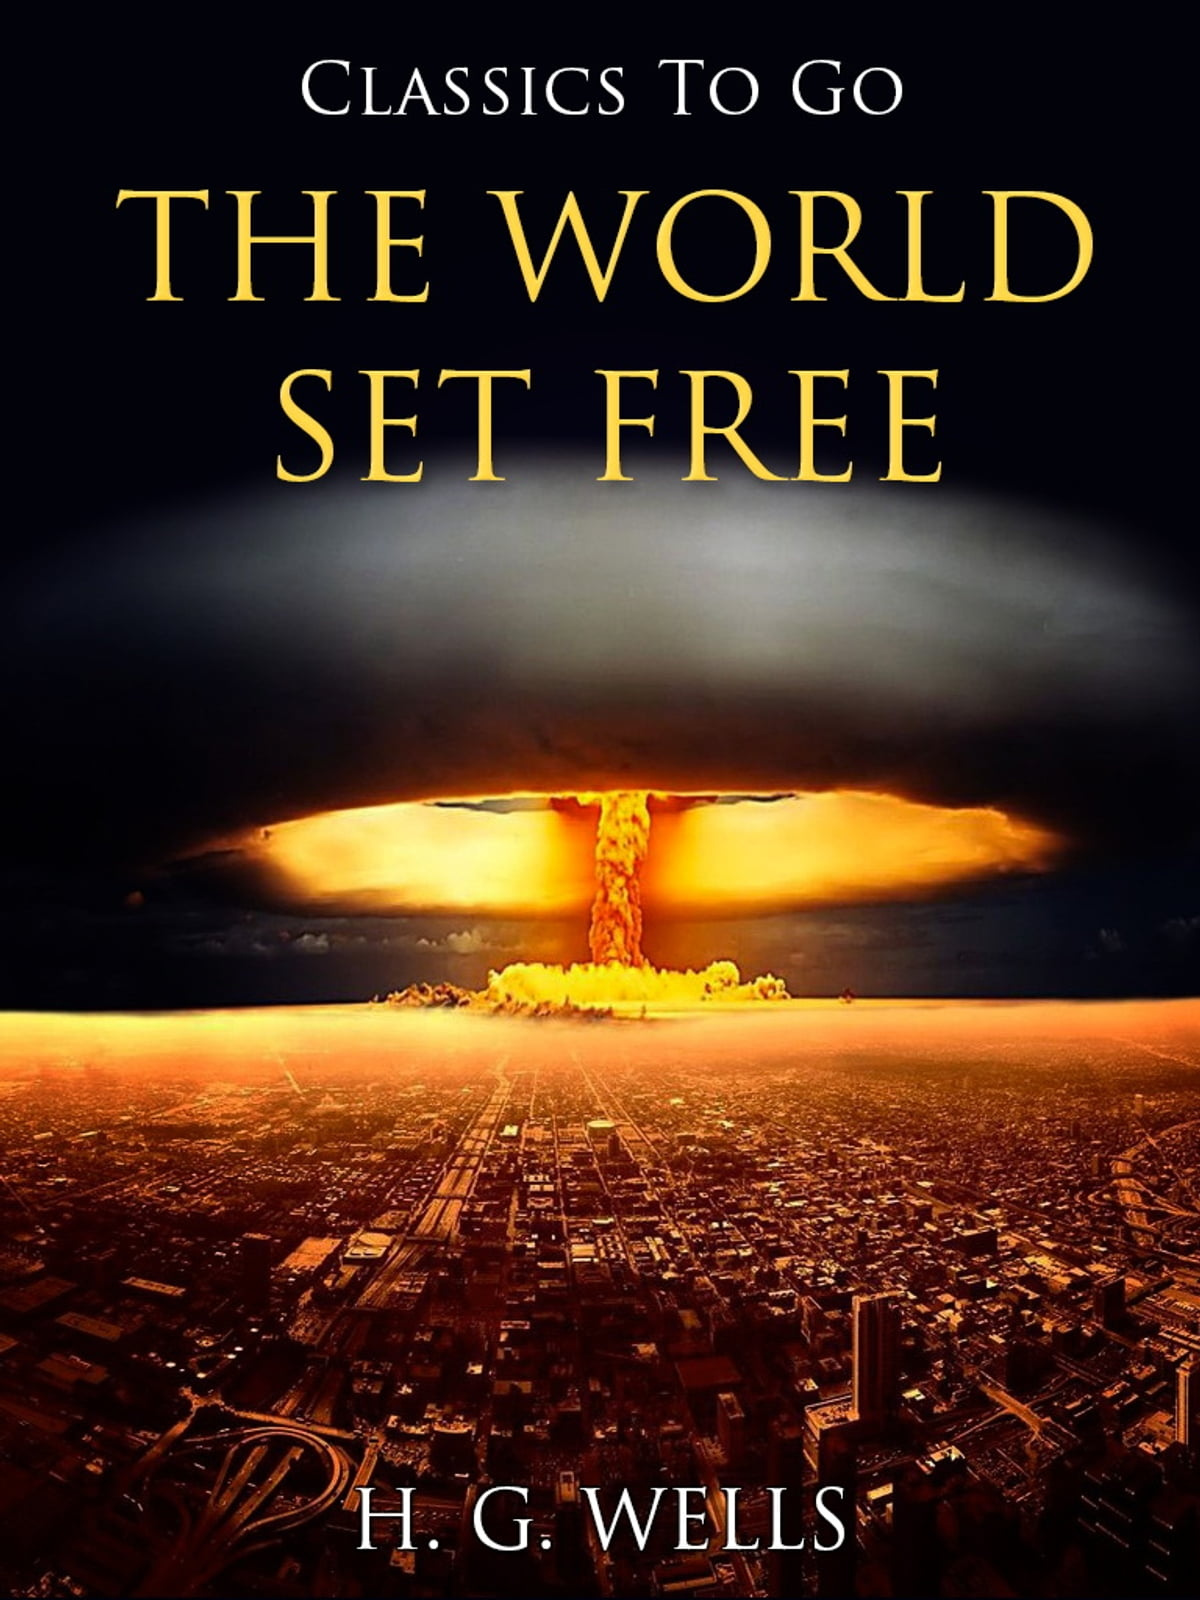 The World Set Free eBook by H. G. Wells | Rakuten Kobo